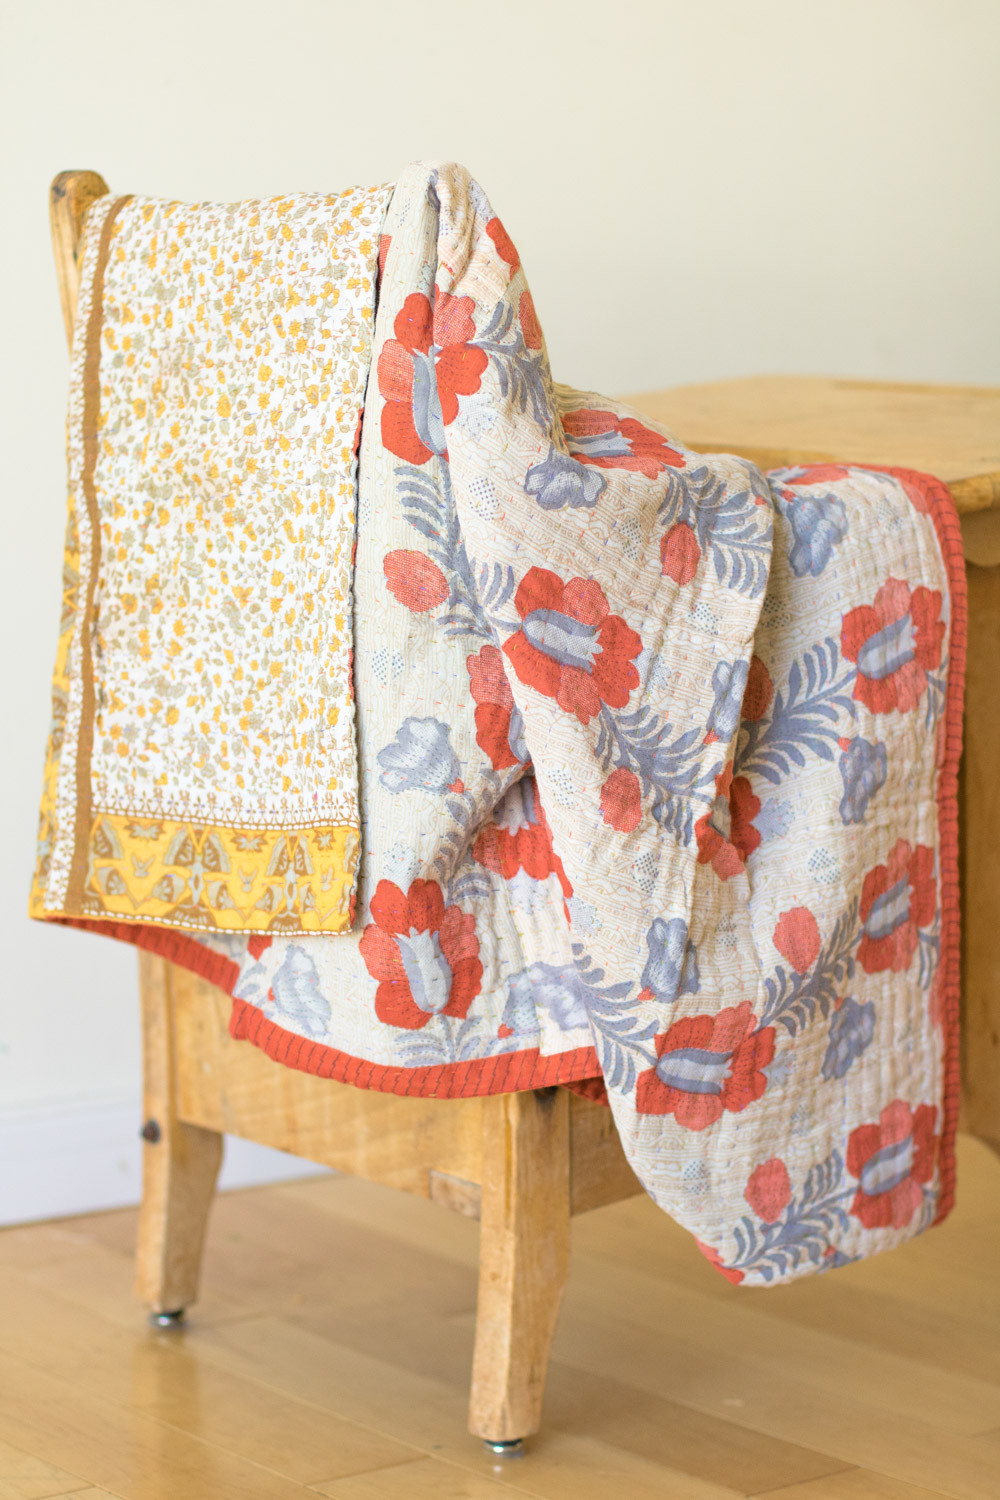 dear-kantha-mini-blanket-may-22